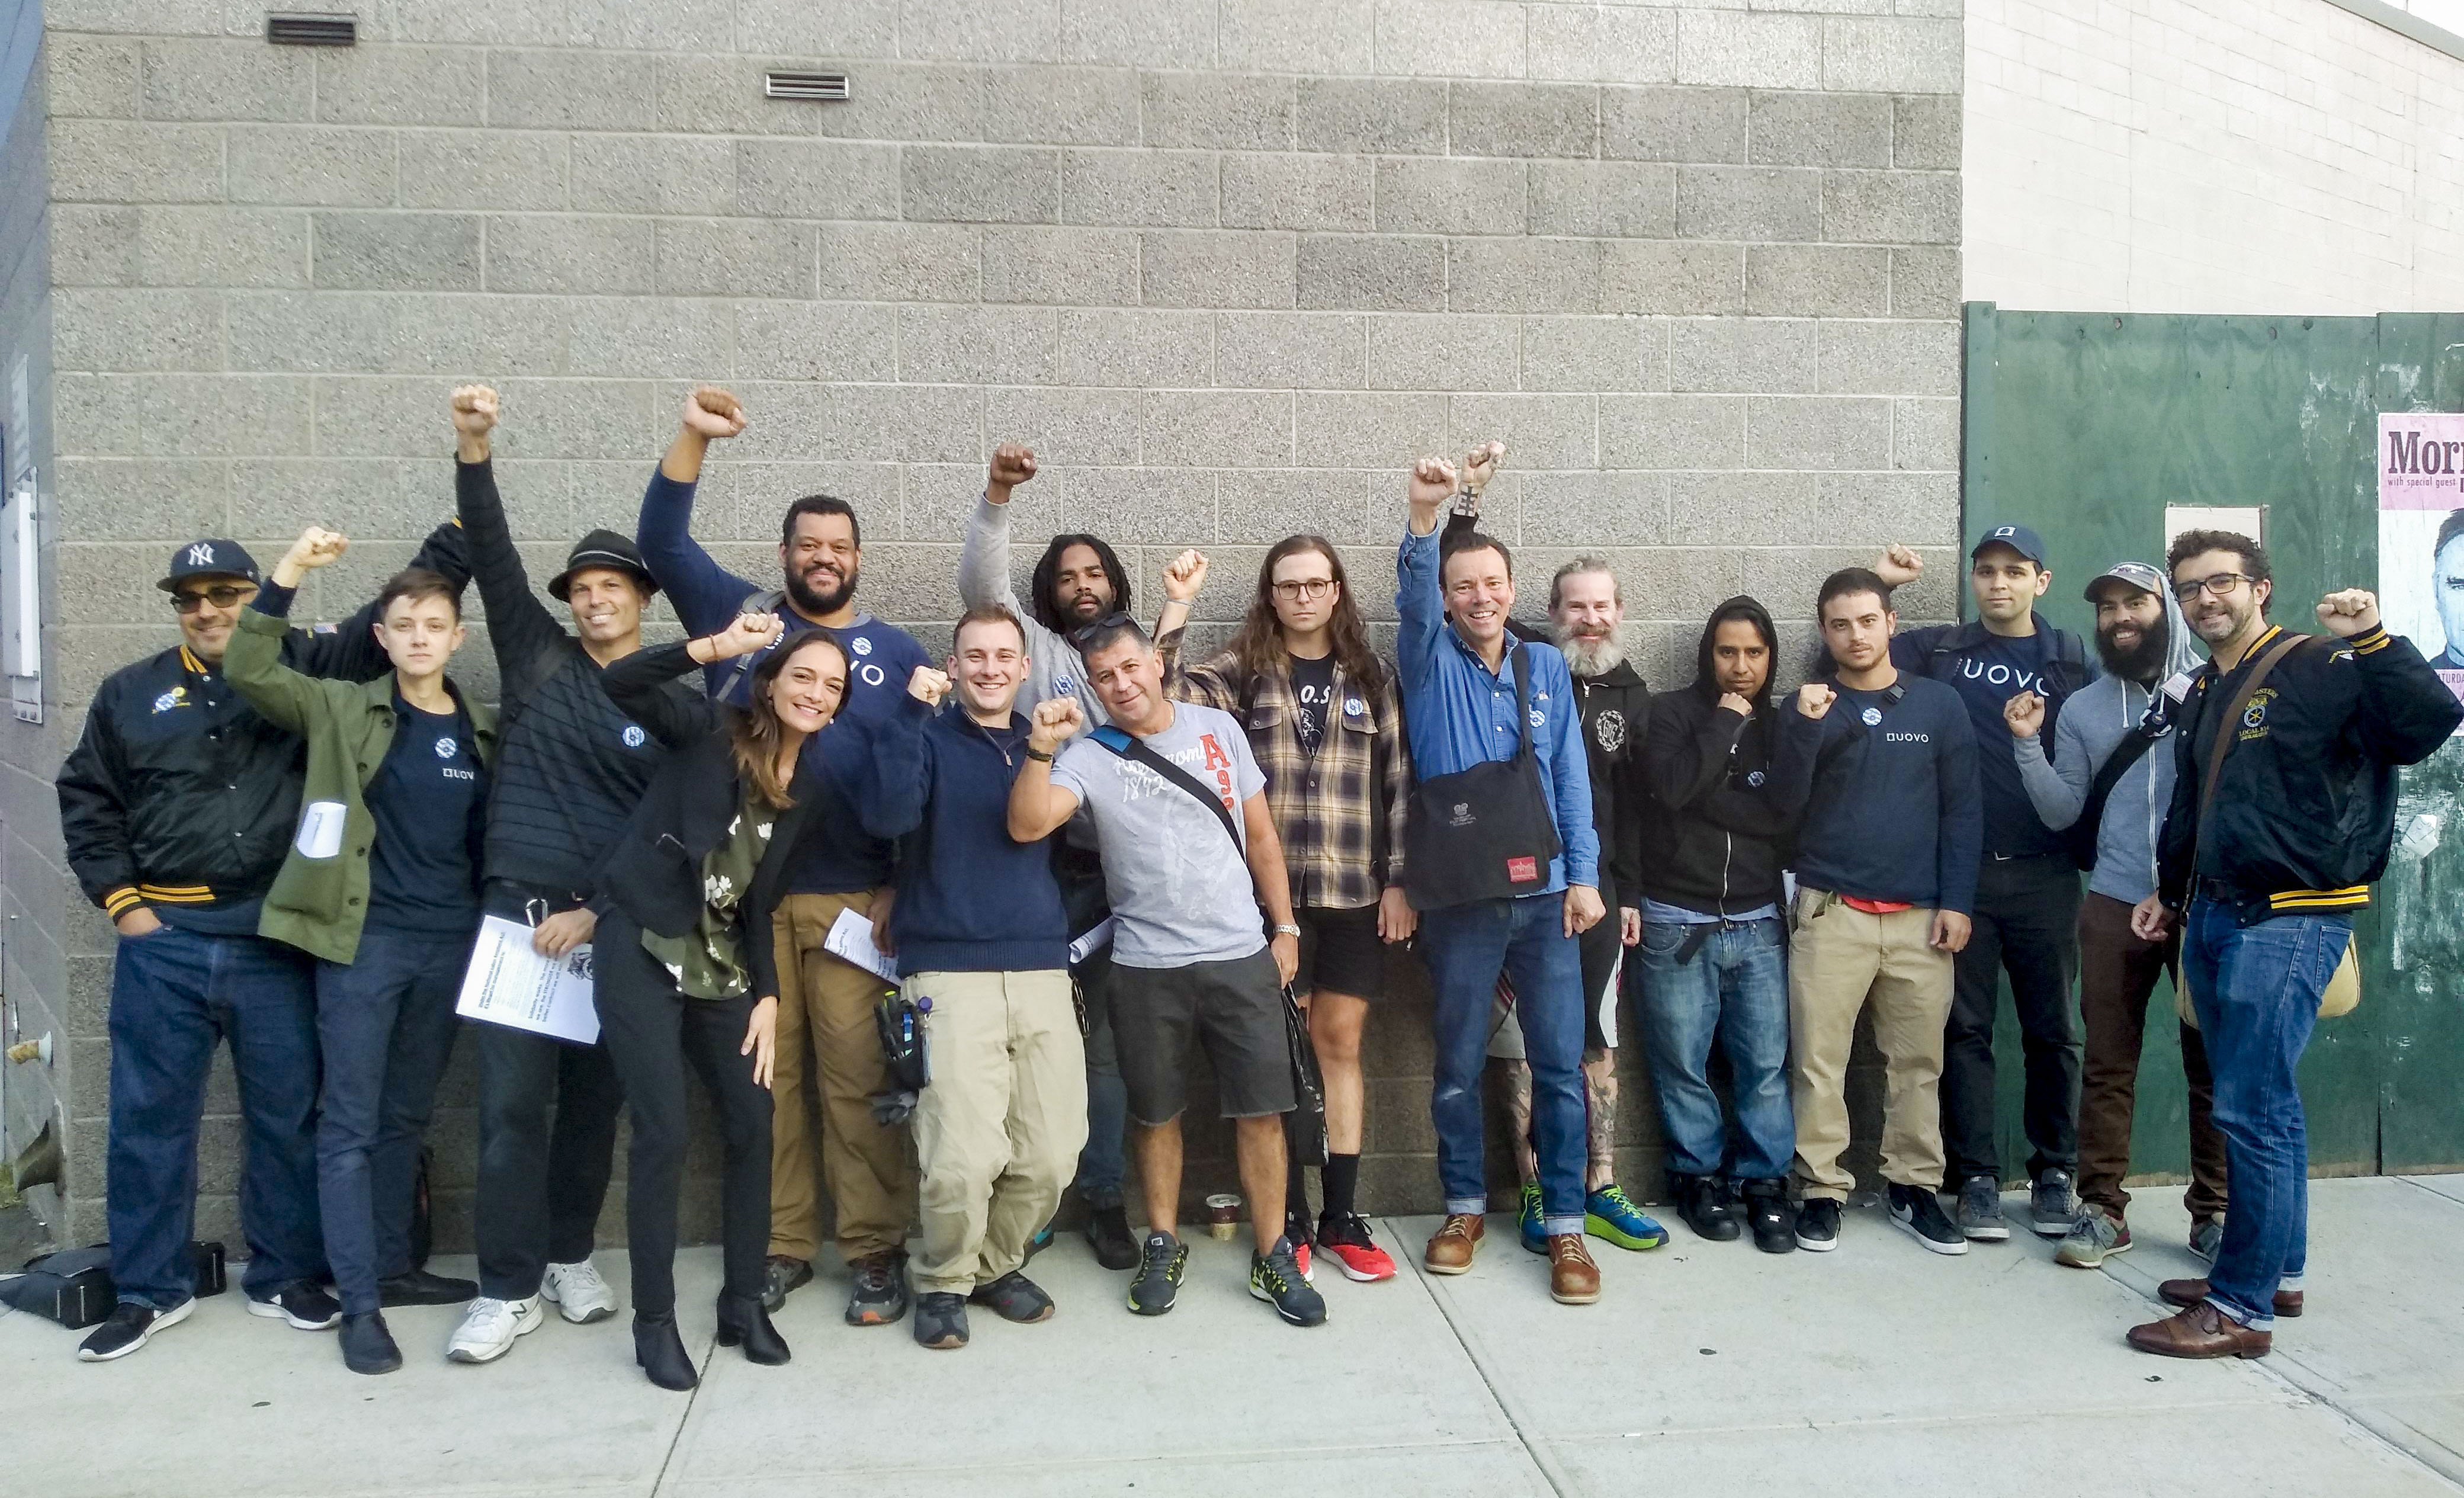 Art-Storage Workers Demand Union at Captive-Audience Meeting